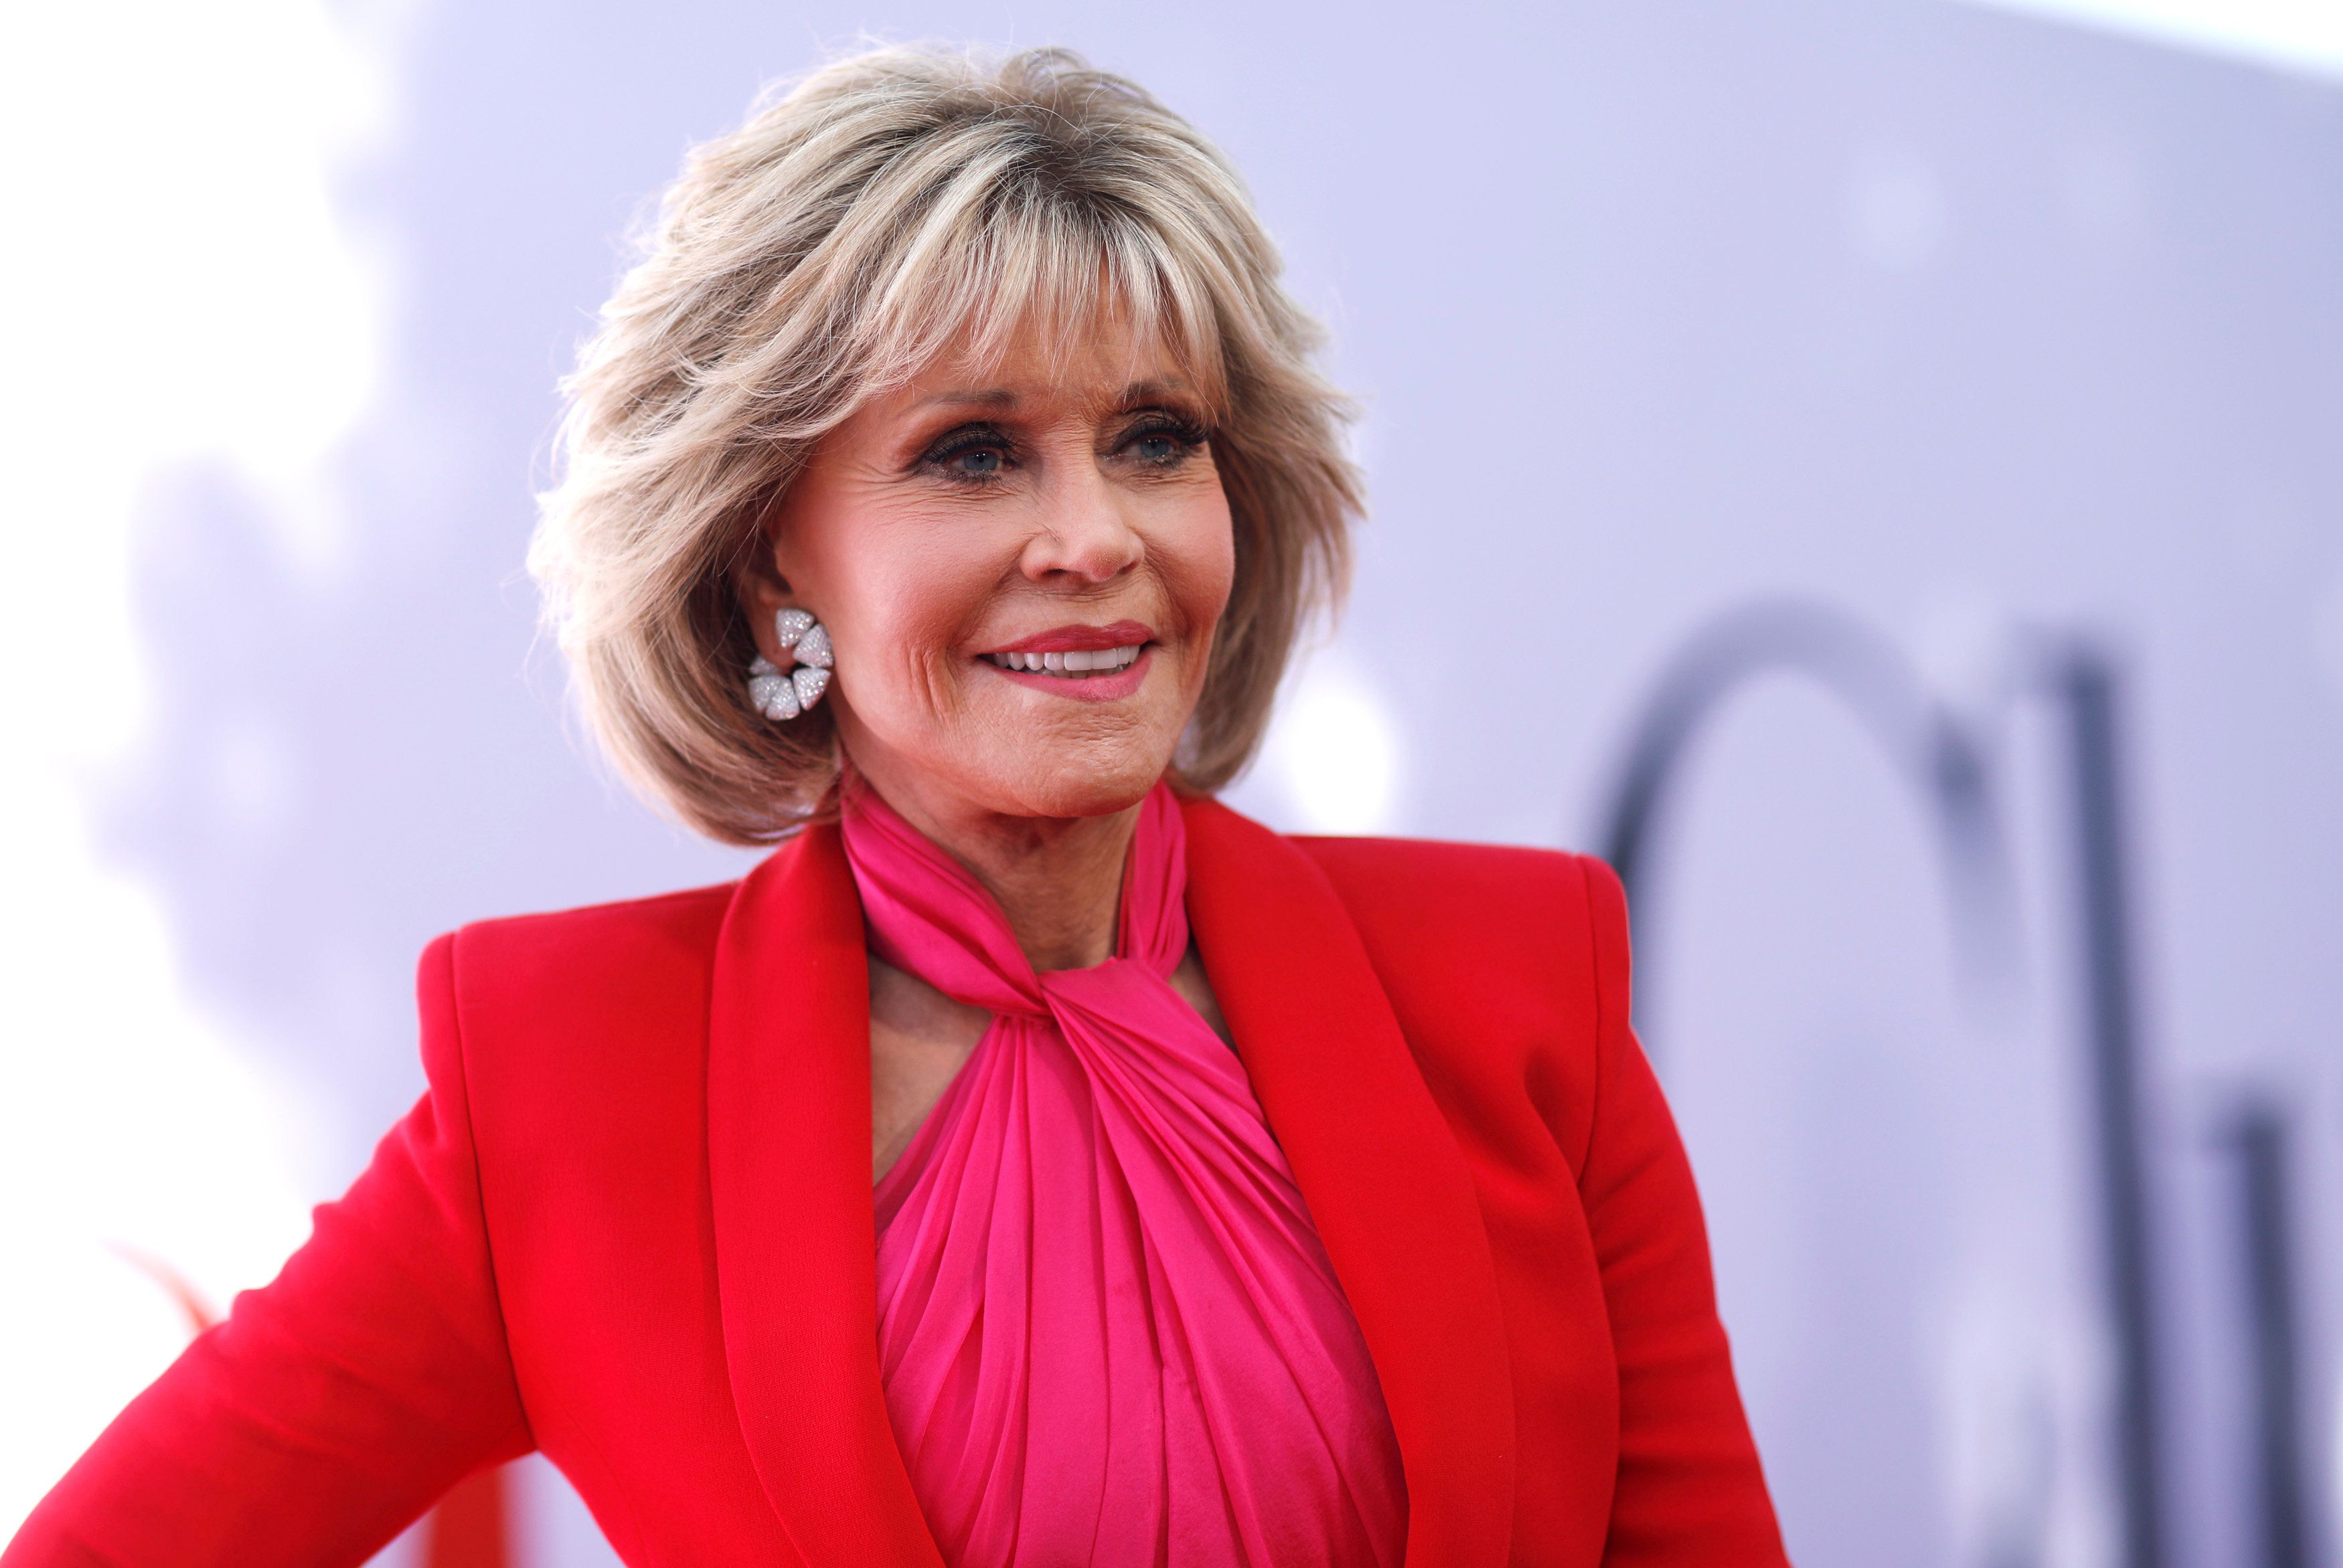 Jane Fonda Wishes She Didn't Feel the Need to Get Plastic Surgery